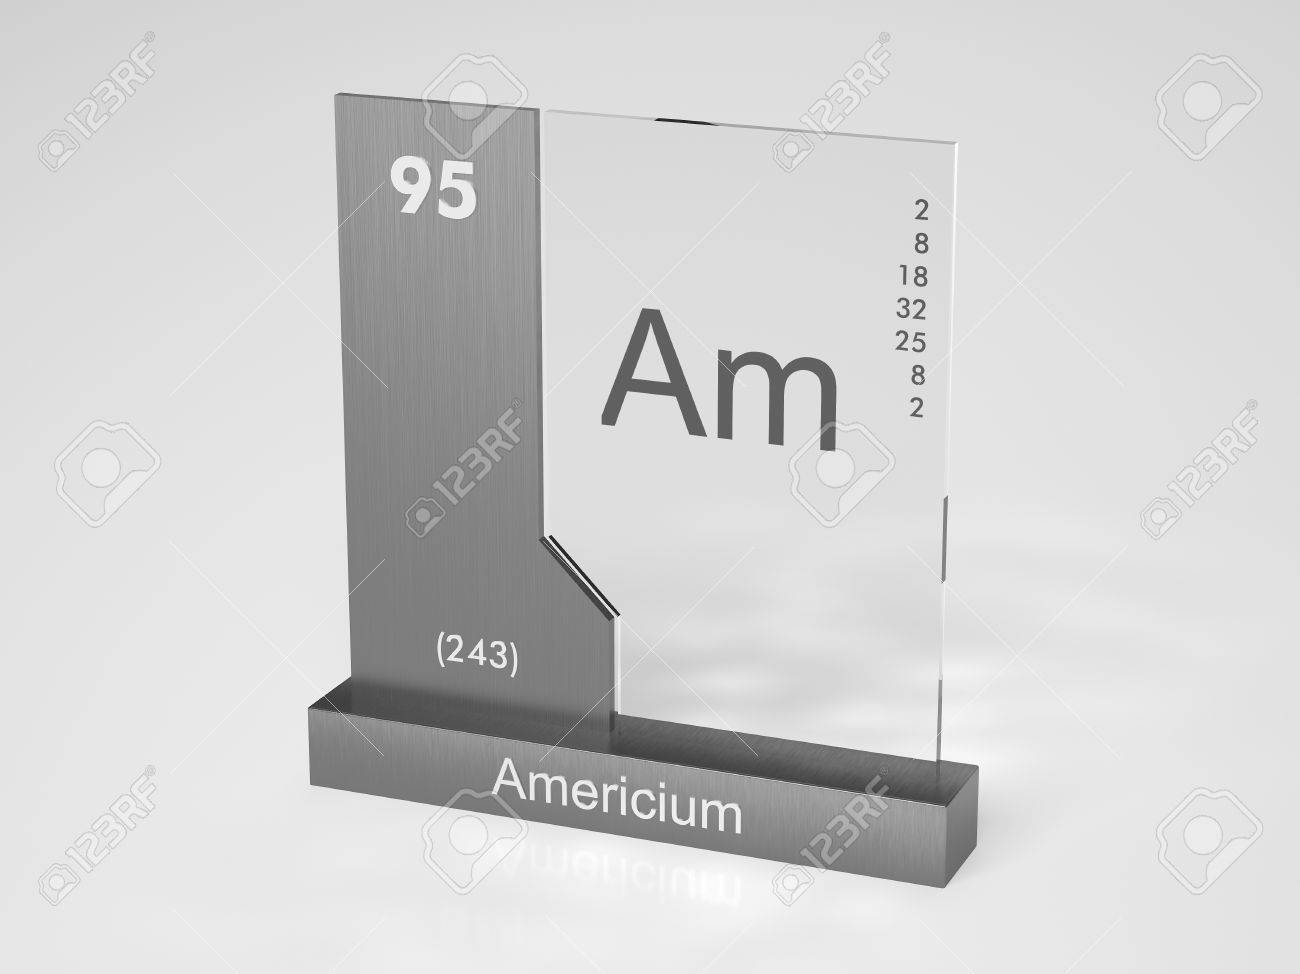 Americium symbol am chemical element of the periodic table americium symbol am chemical element of the periodic table stock photo 11503400 gamestrikefo Image collections